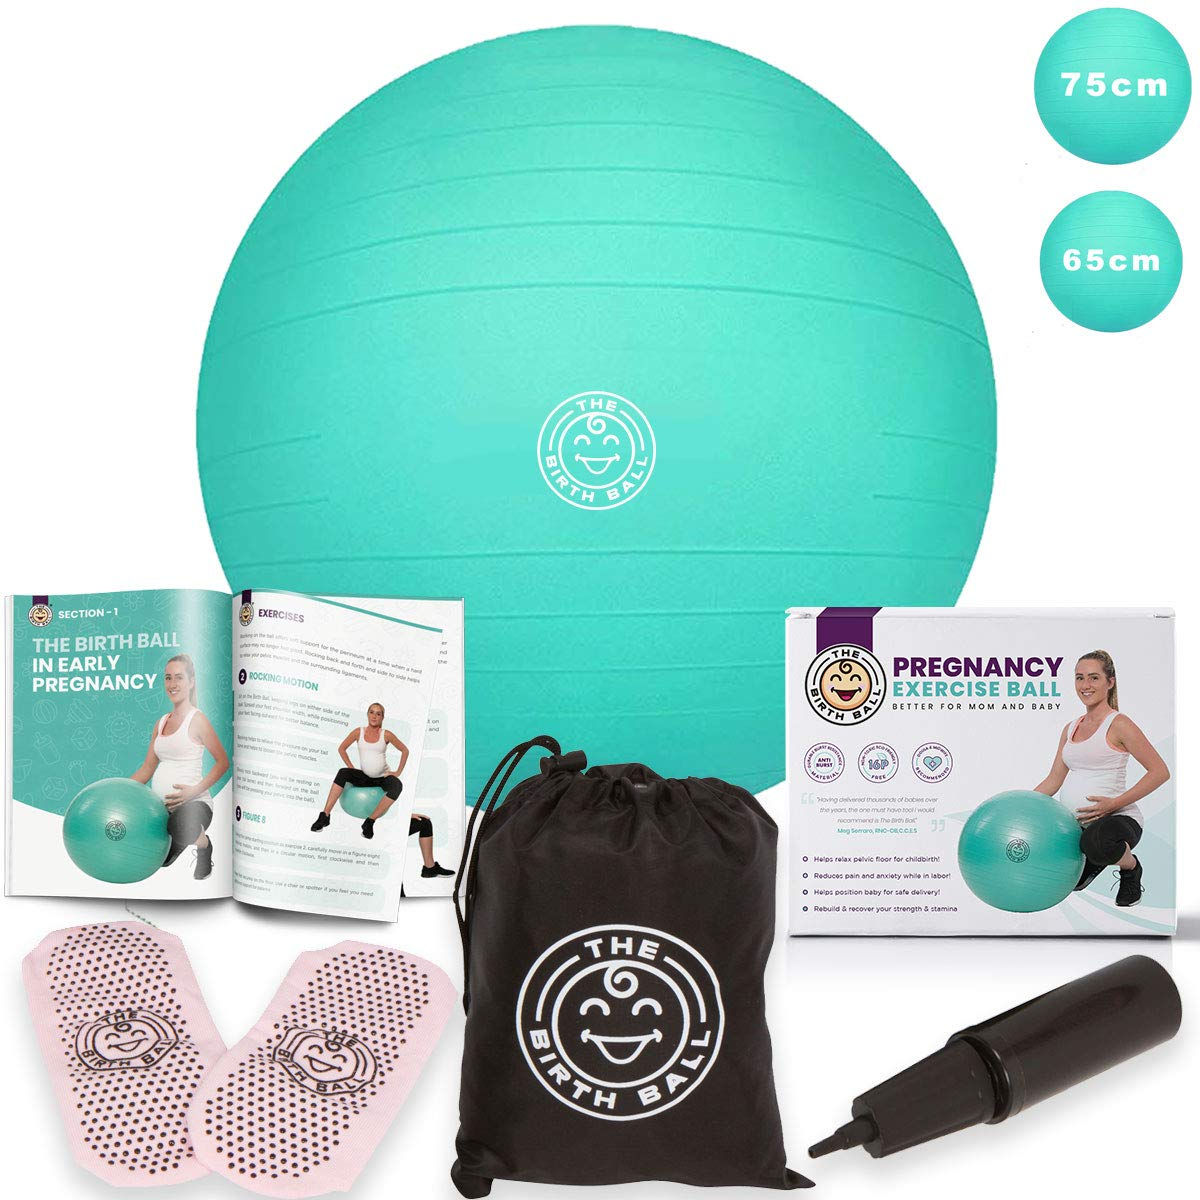 The Birth Ball - Birthing Ball for Pregnancy & Labor - 18 Page Pregnancy Ball Exercises Guide by Trimester - Non Slip Socks - How to Dilate, Induce, Reposition Baby for Mom 65cm by The Birth Ball